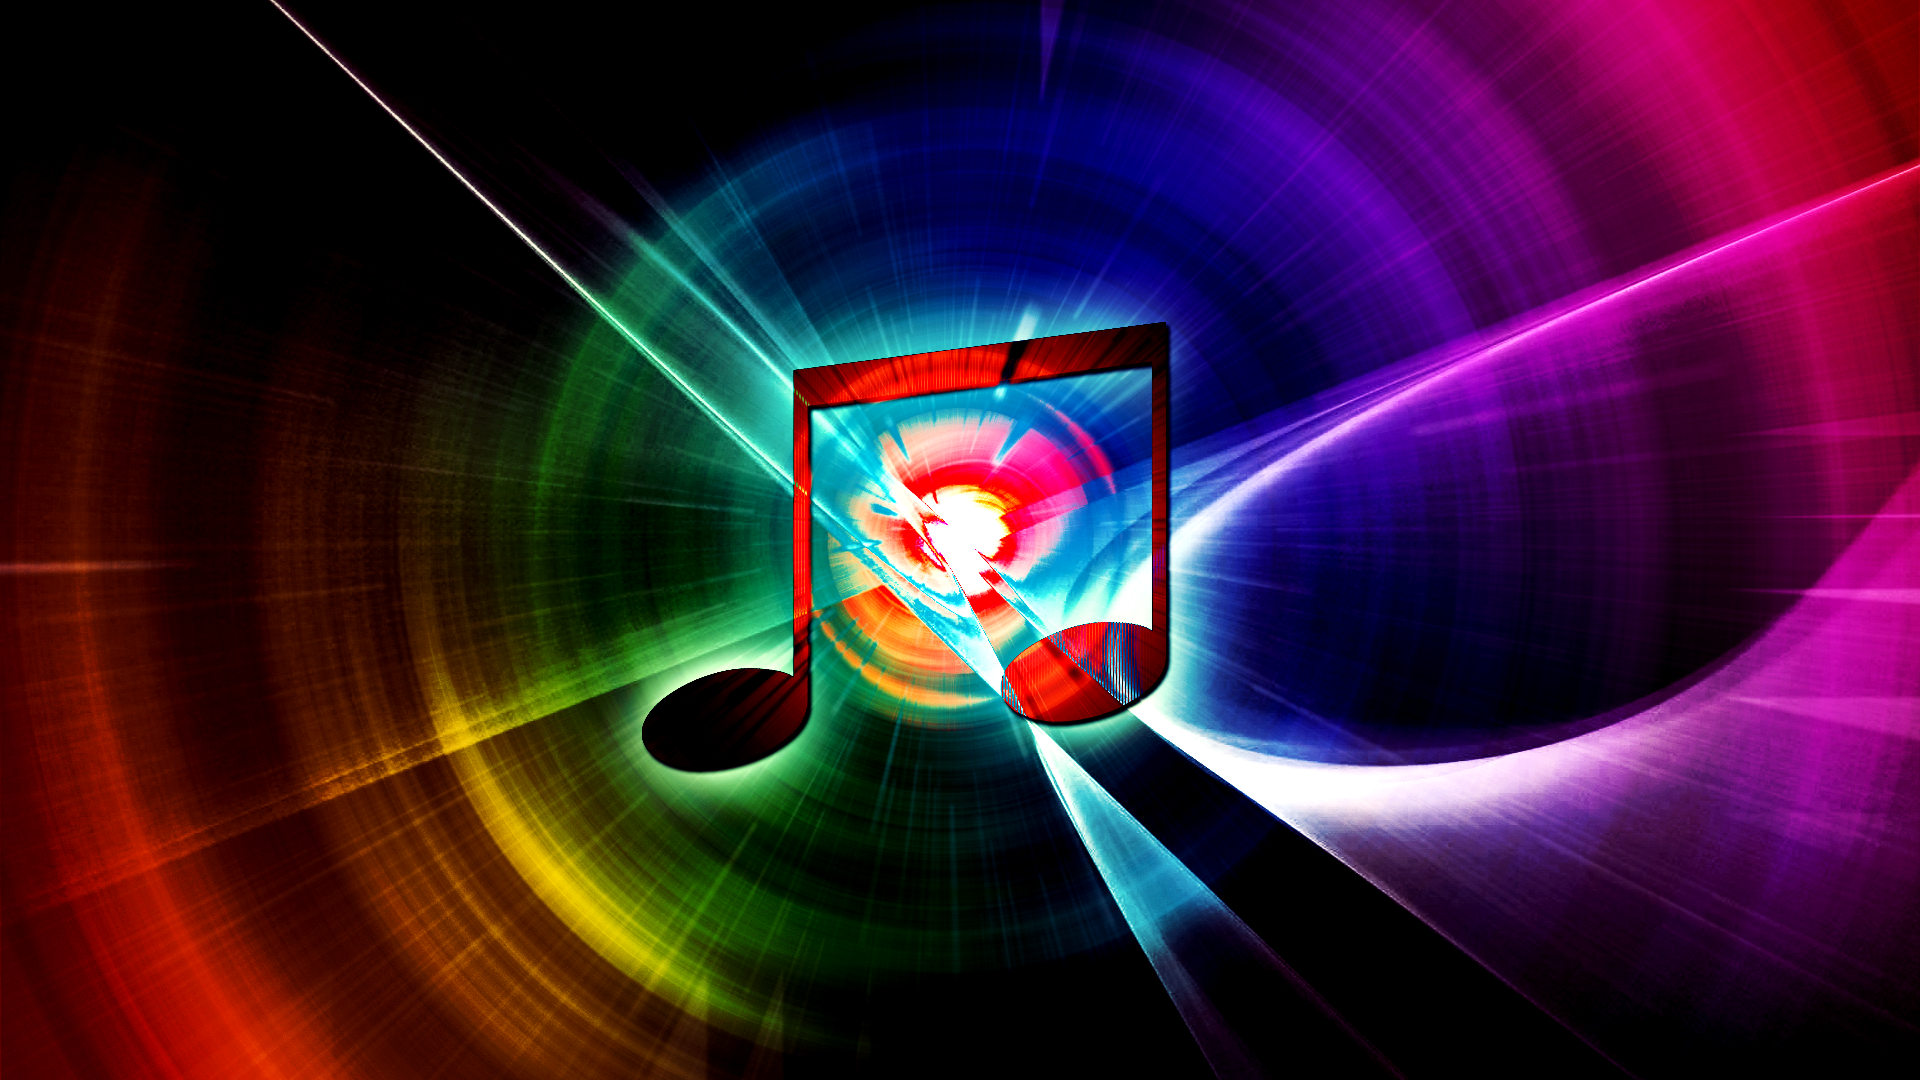 Awesome Music Wallpapers - WallpaperSafari